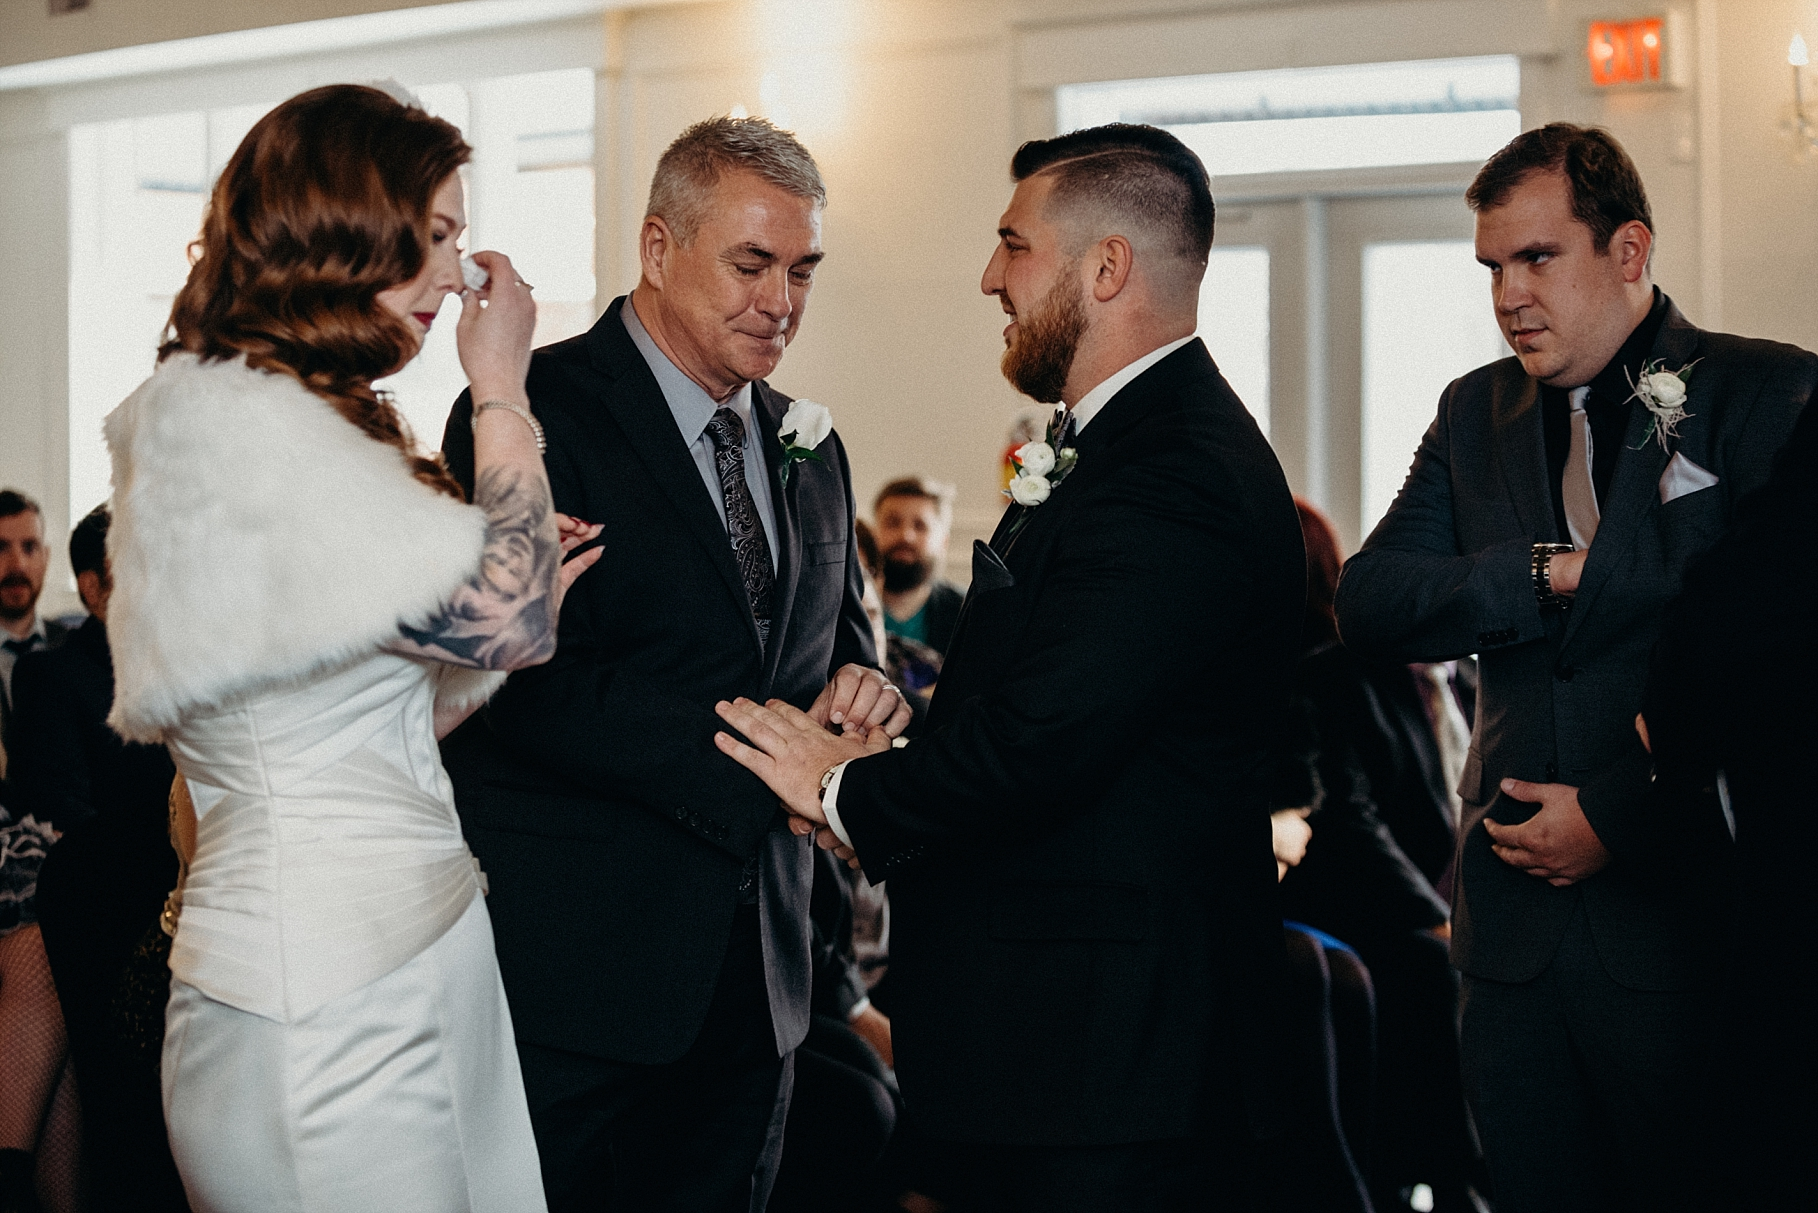 Orchard View Wedding by Mocha Tree Studios Ottawa Wedding and Engagement Photographer and Videographer Dark Moody Intimate Authentic Modern Romantic Cinematic Best Candid 11